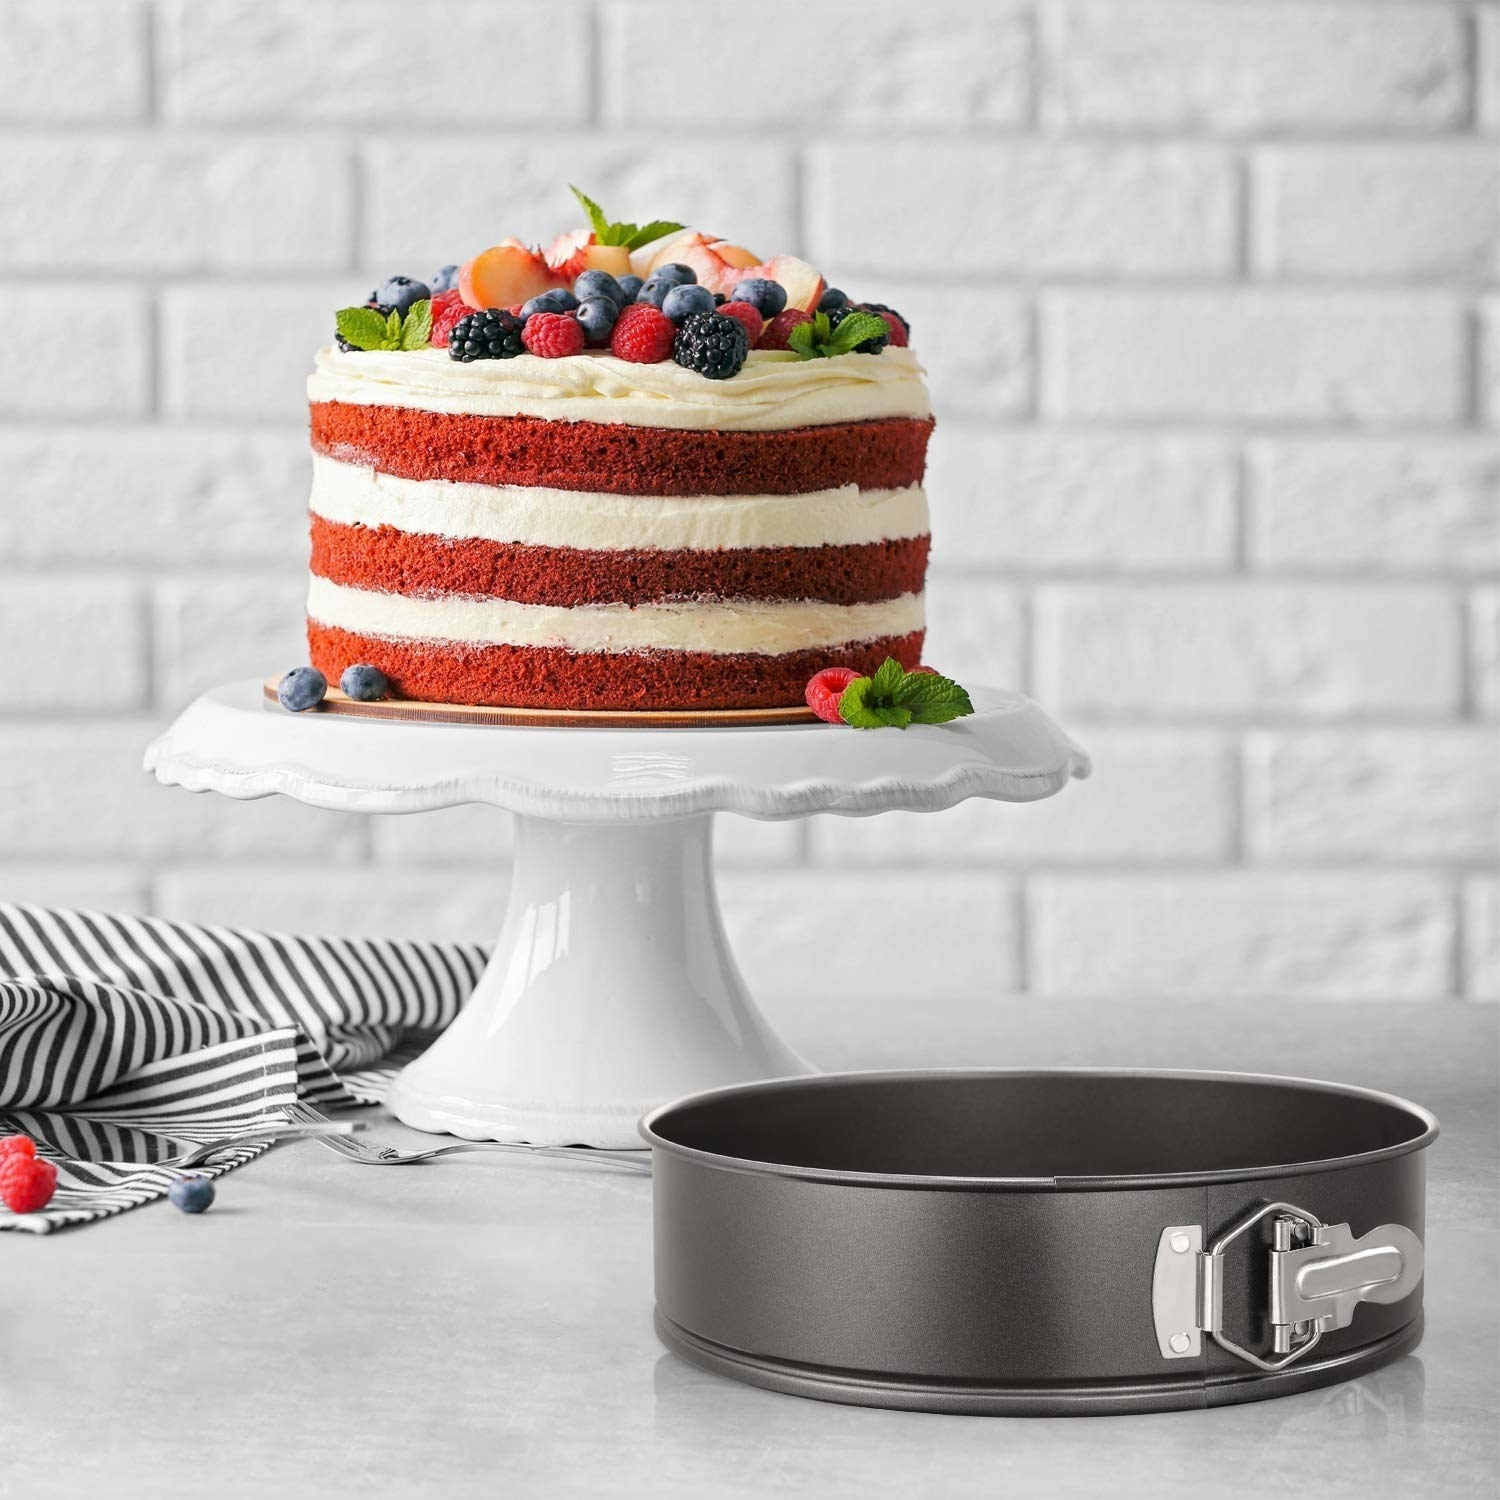 A teflon-coated cake mould sitting beside a frosted red velvet cake with fruits as decoration